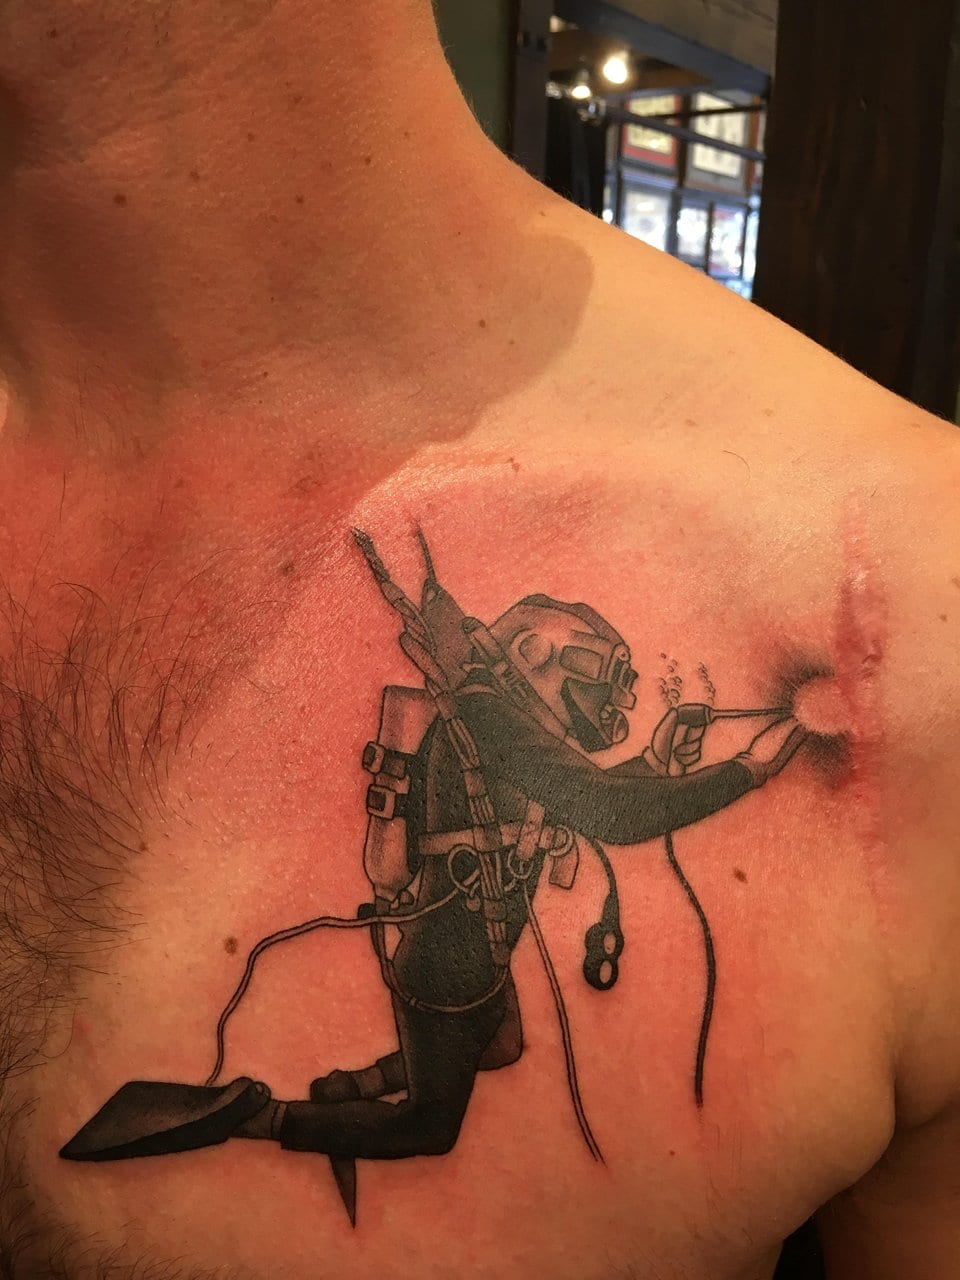 50 Tattoos That Turned Birthmarks And Scars Into Works Of Art